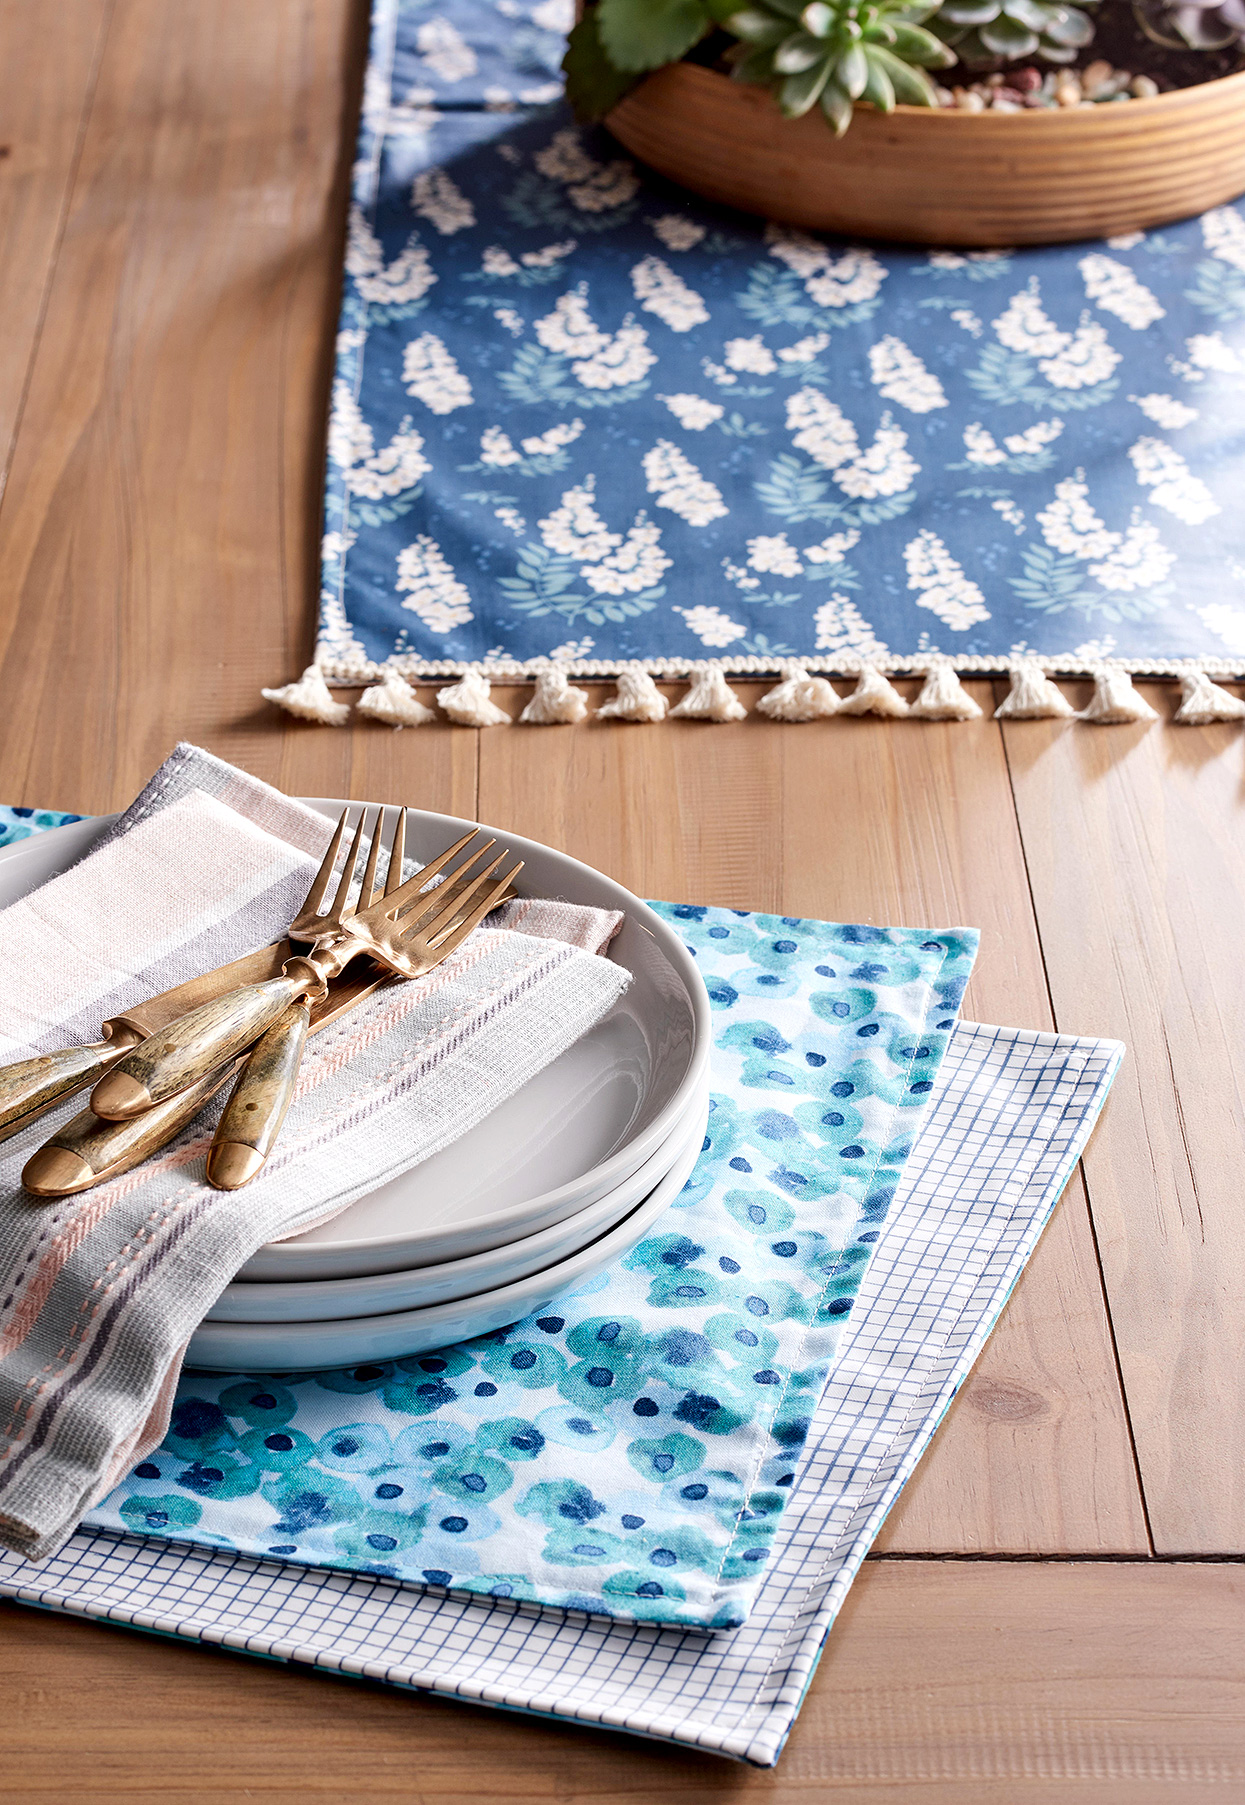 finished diy blue table runner and placemats